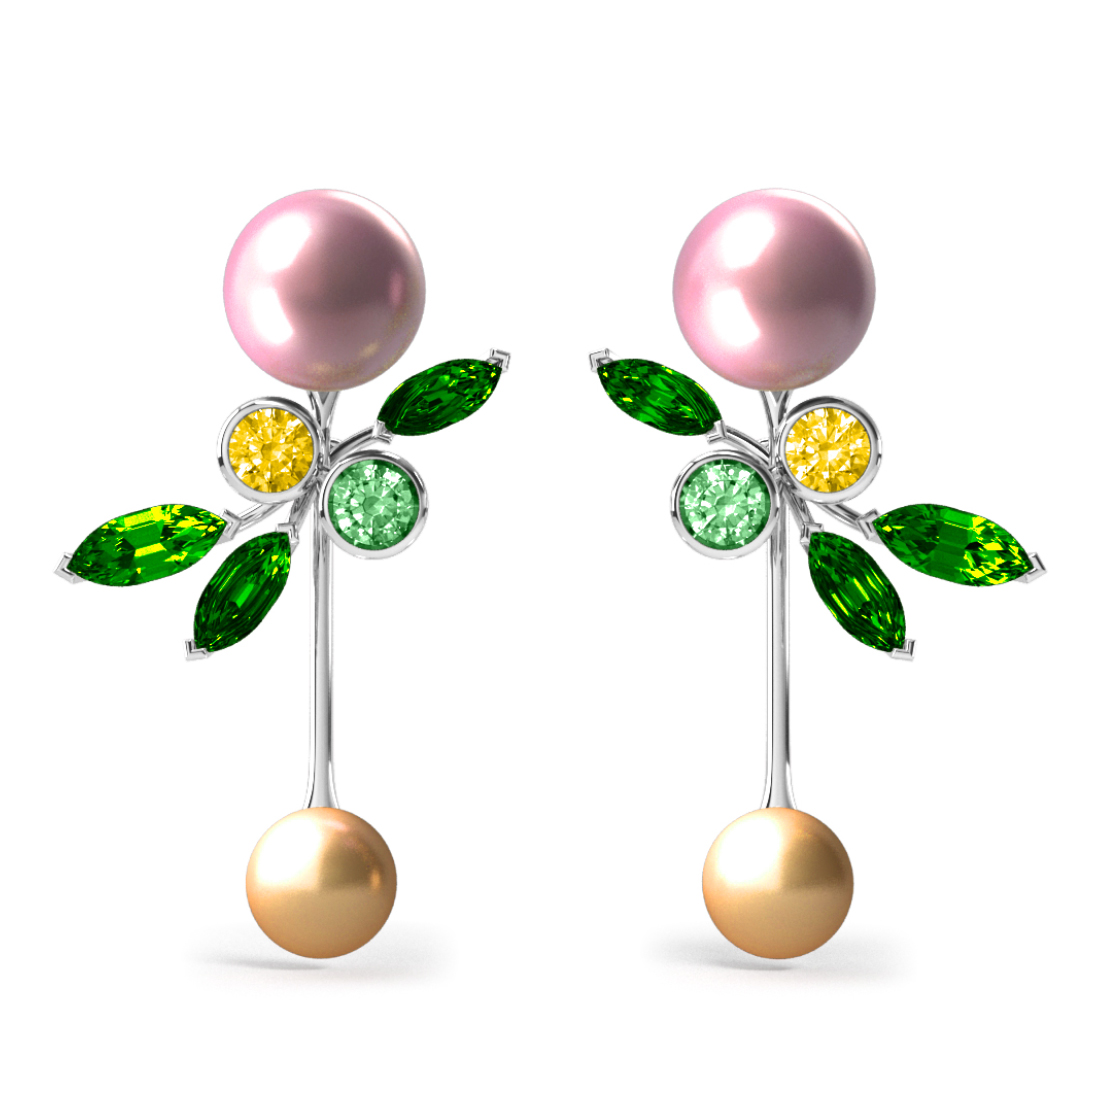 Boucles d'oreilles Pearly Angel Rose & Gold - Saphirs, diamants, tsavorites & perle d'eau douce et des mers du Sud <br /> Or blanc 18 carats